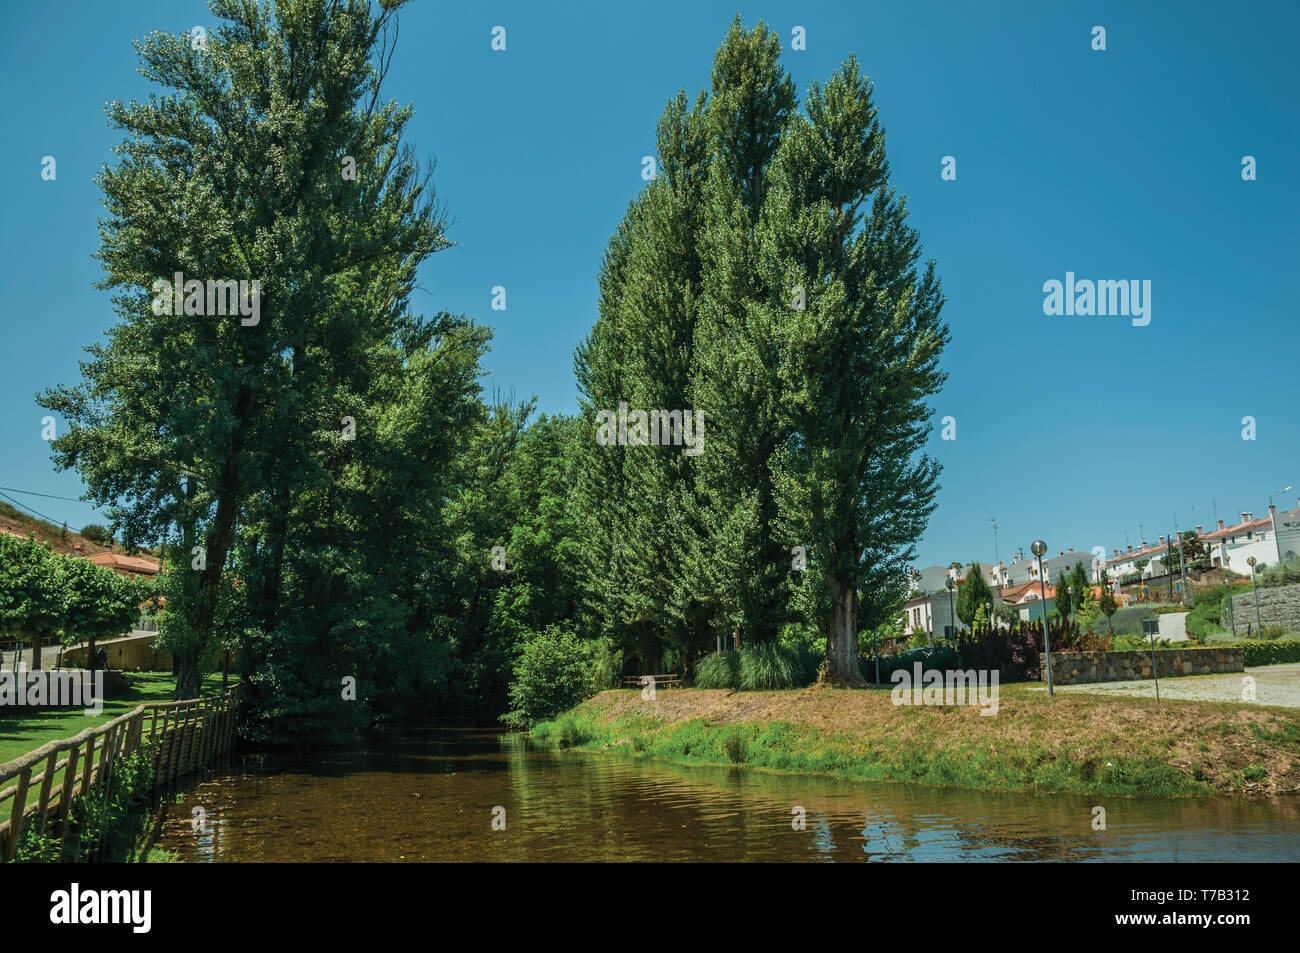 View of Sever River among leafy trees and undergrowth in a sunny day at Portagem. A district of Marvão at the bottom valley in Portugal. - Stock Image